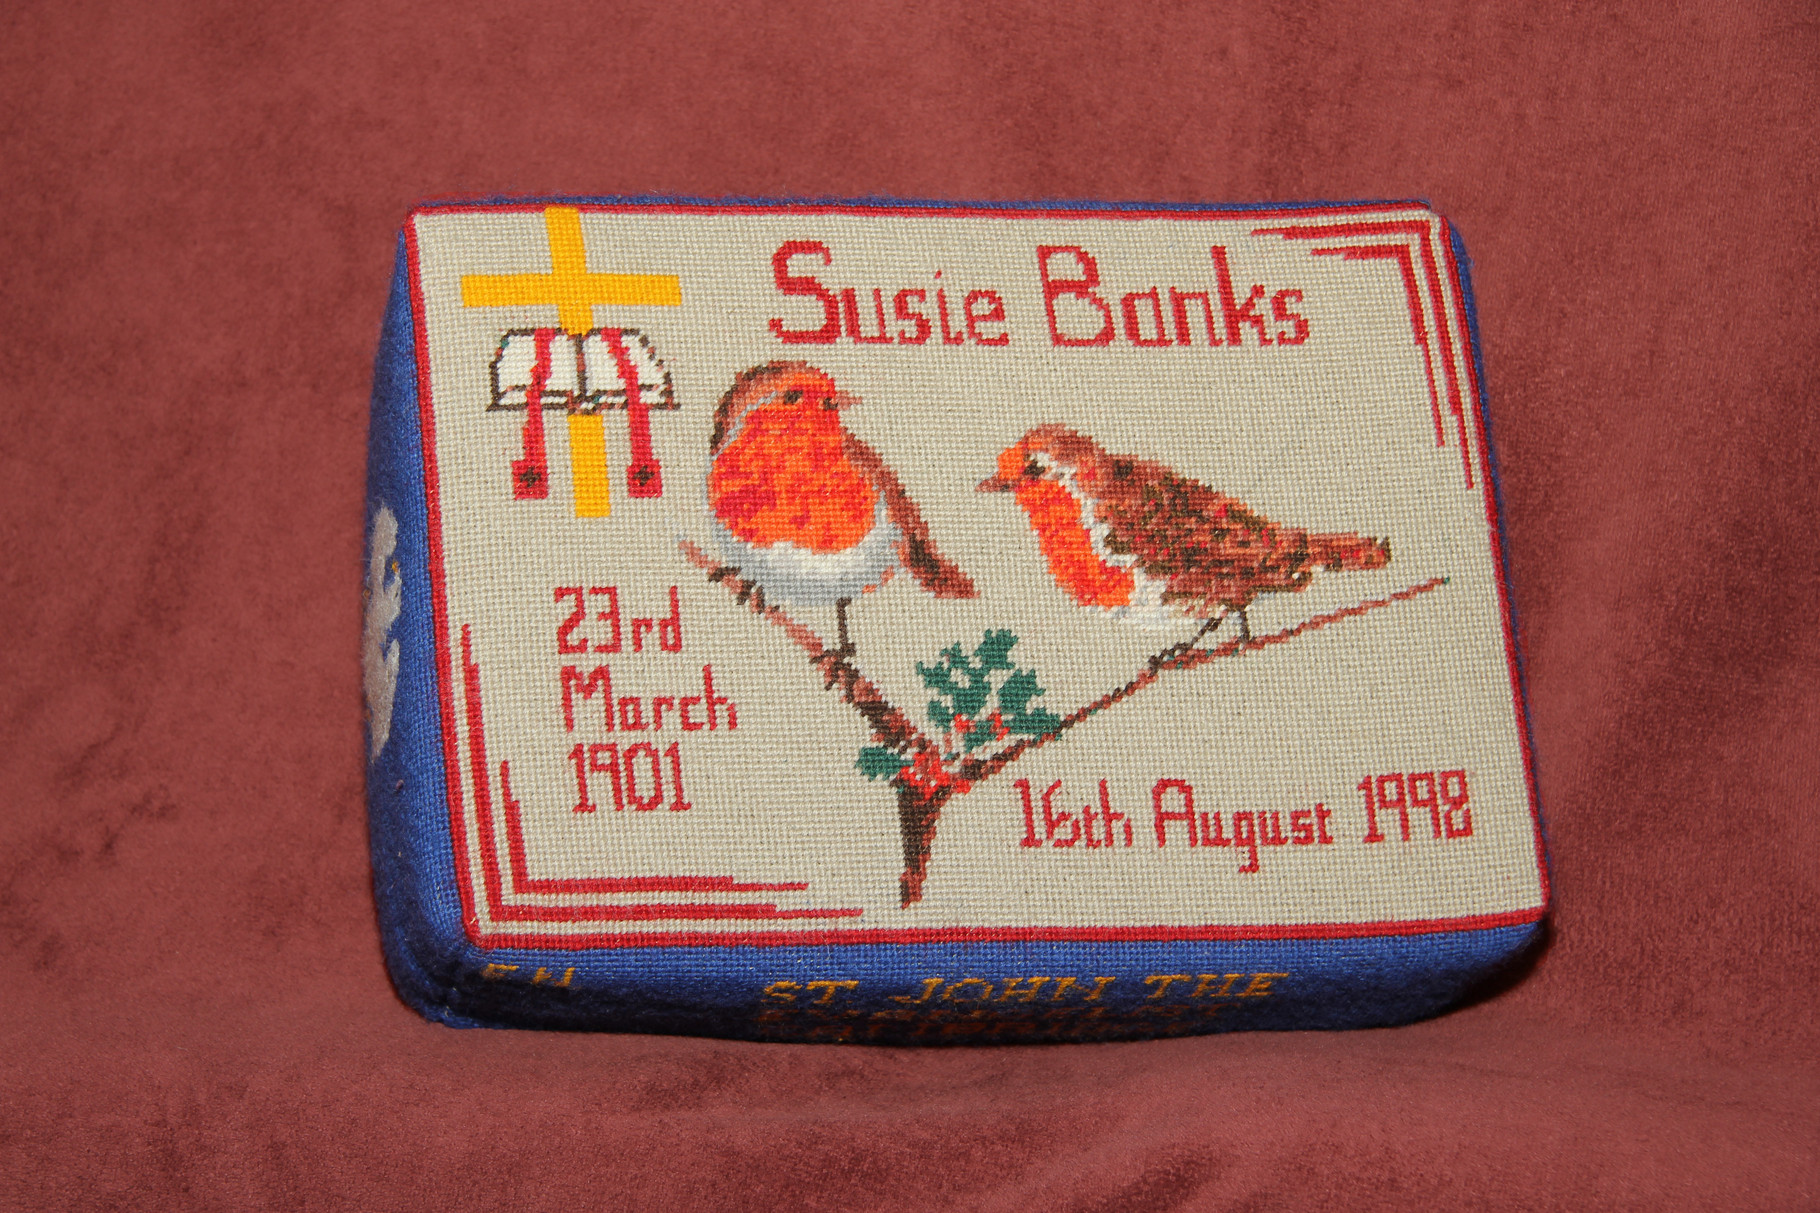 48. Robins/ Cross and Bible in memory of Susie Banks (1901-1998) donated  by Eddie Neech and worked  by Joy Barker